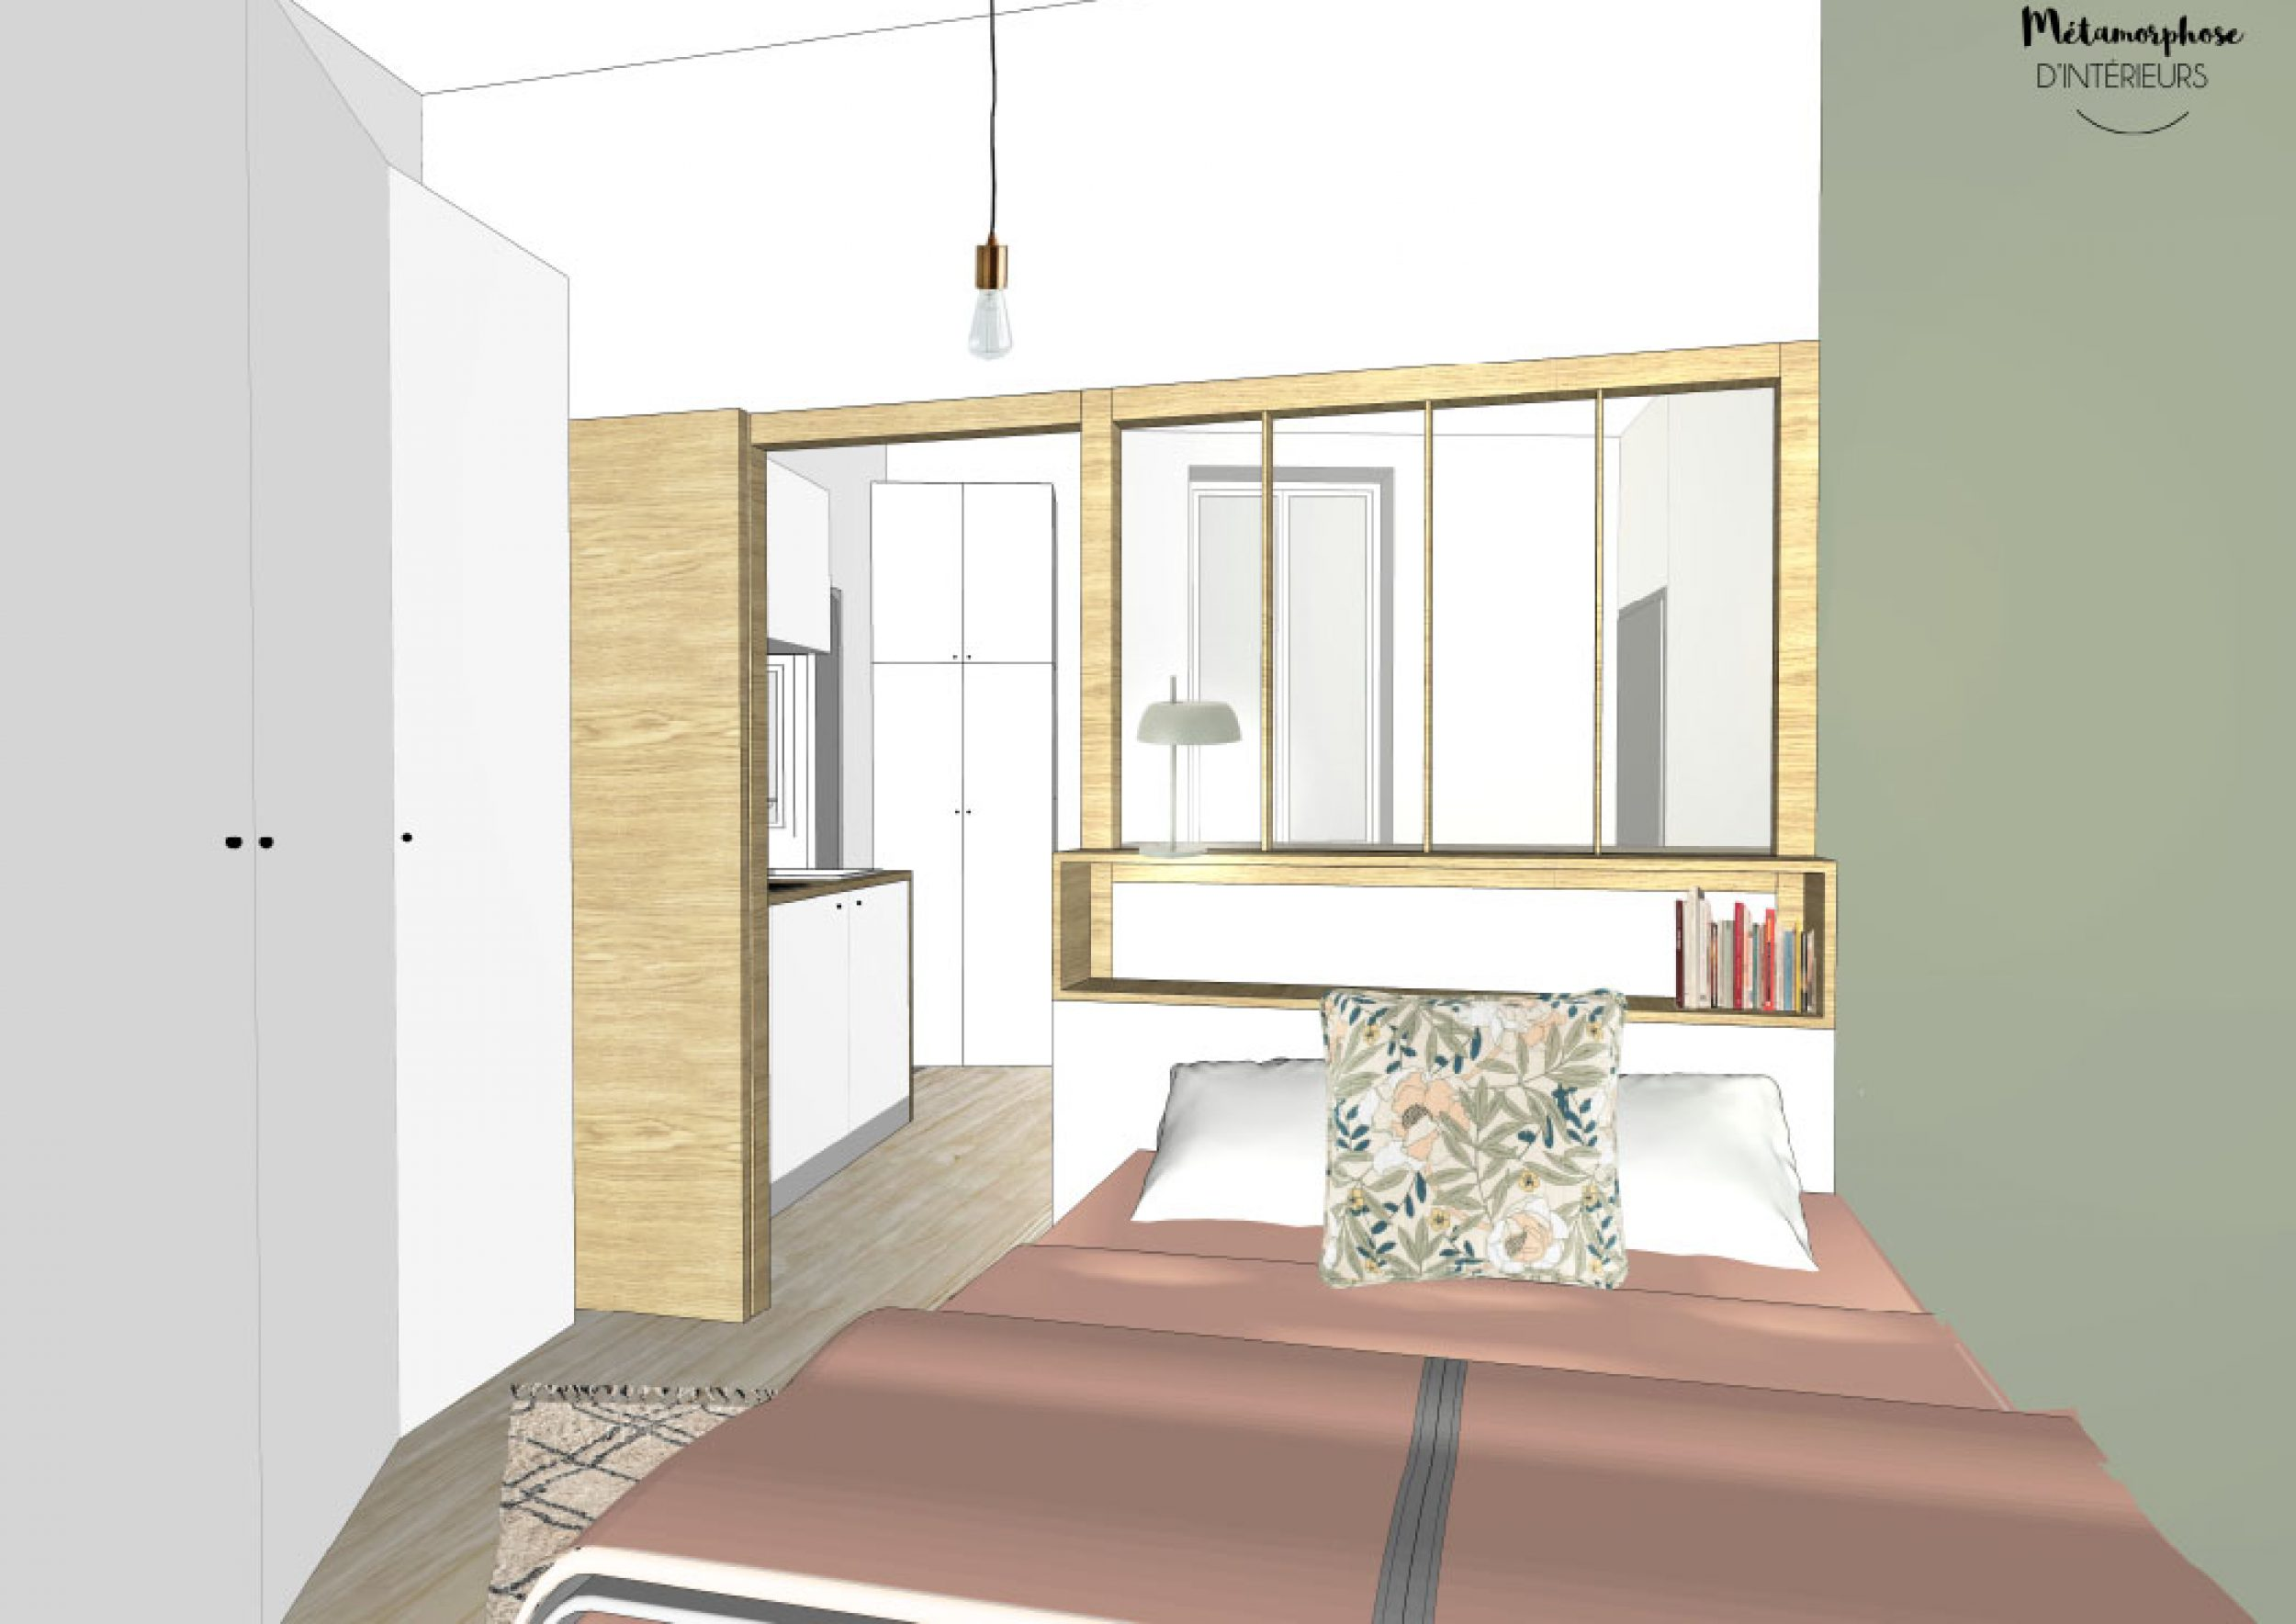 T1 BIS a louer - PERSPECTIVE CHAMBRE